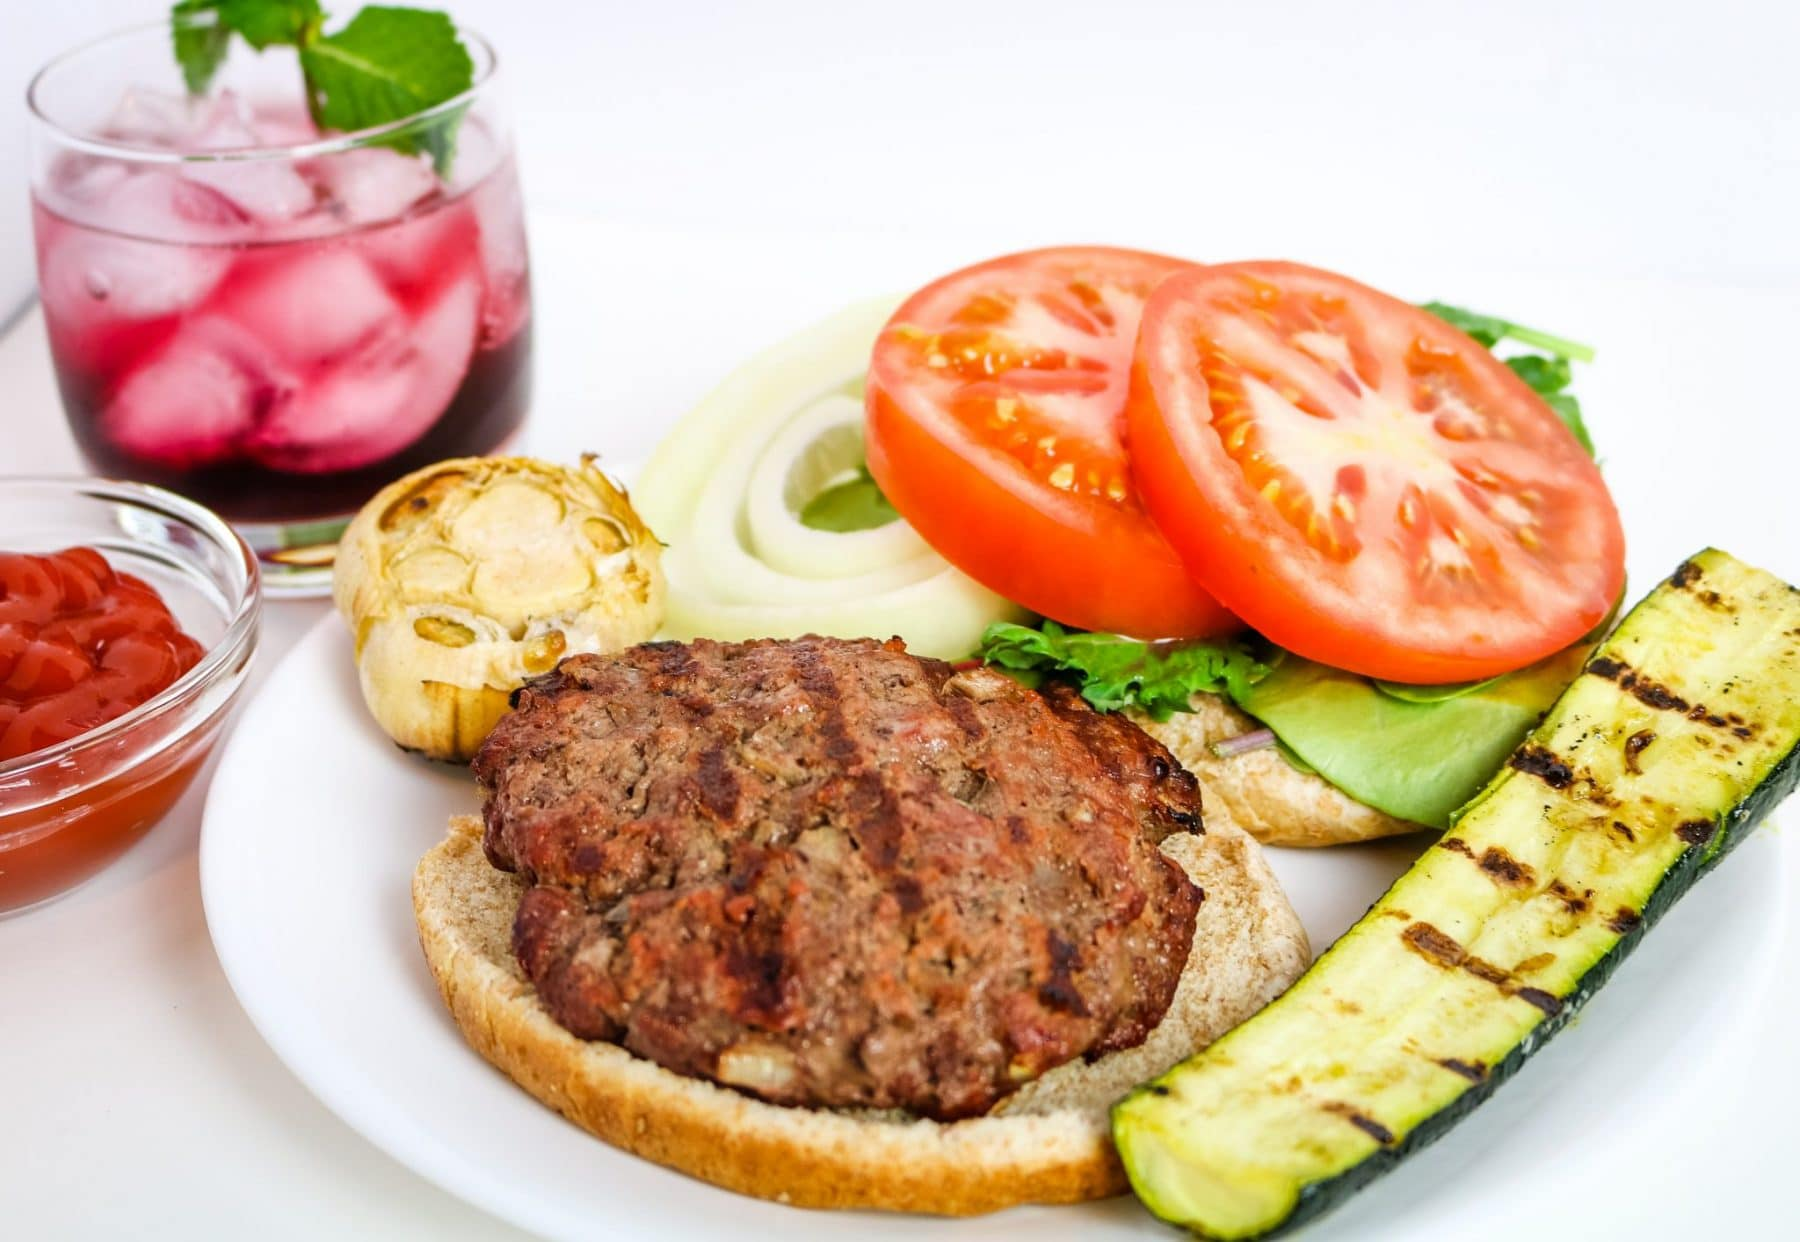 picture of bison burger